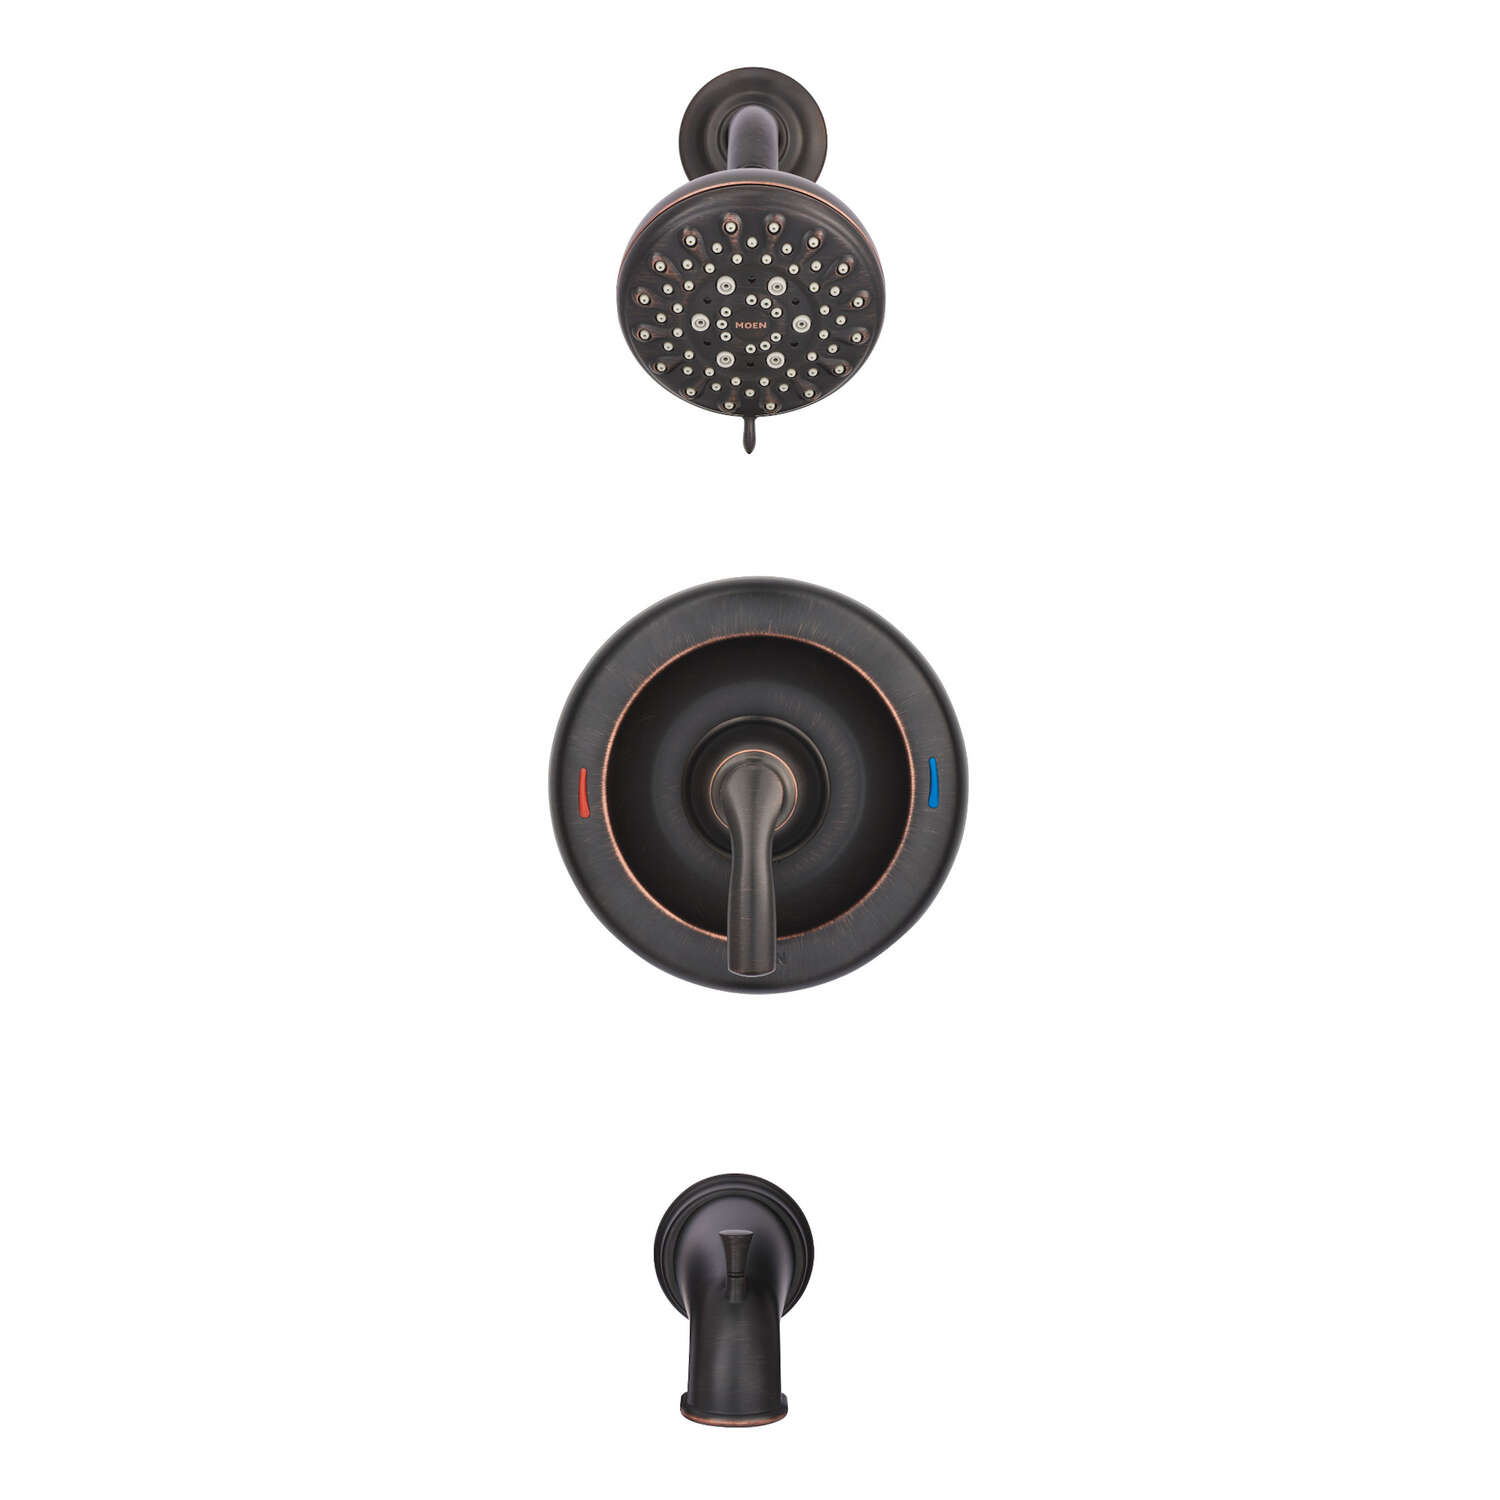 Moen  Hilliard  One Handle  Tub and Shower Faucet  Mediterranean Bronze  Metal